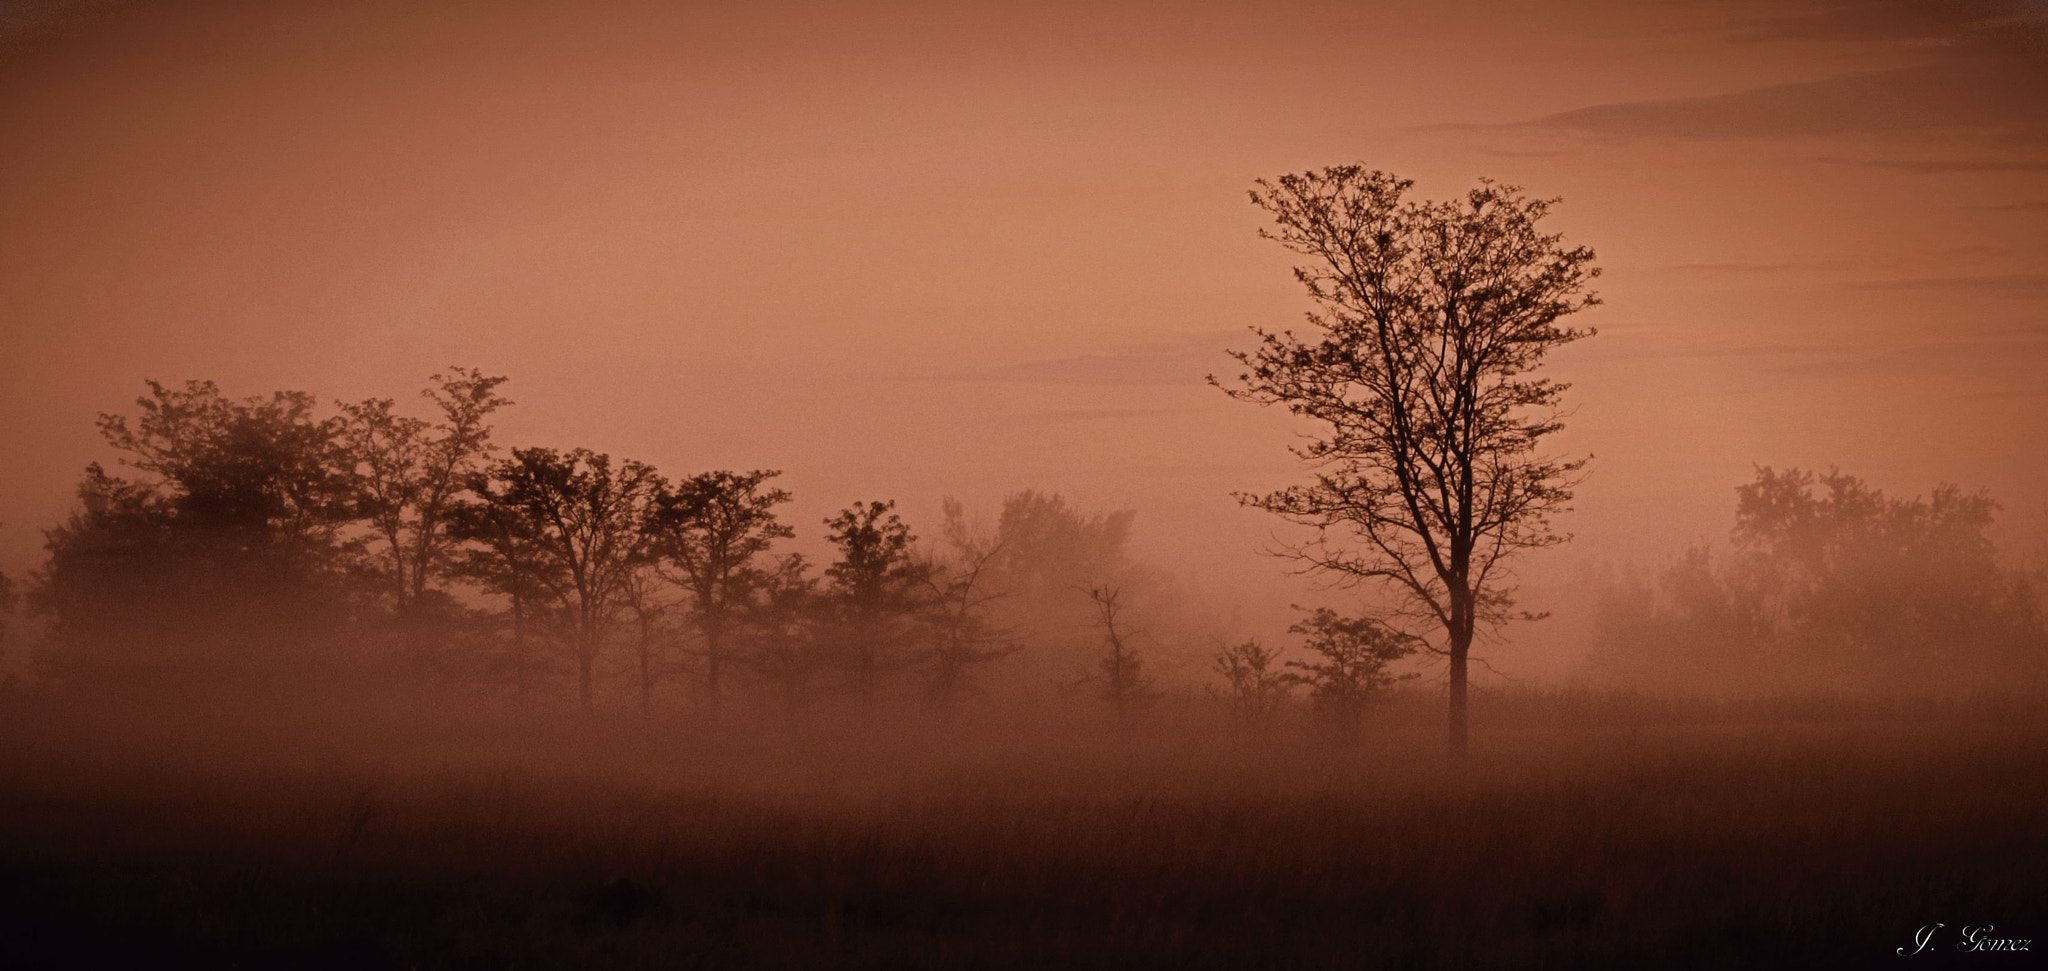 Photograph Morning Mist2 by Johnny Gomez on 500px